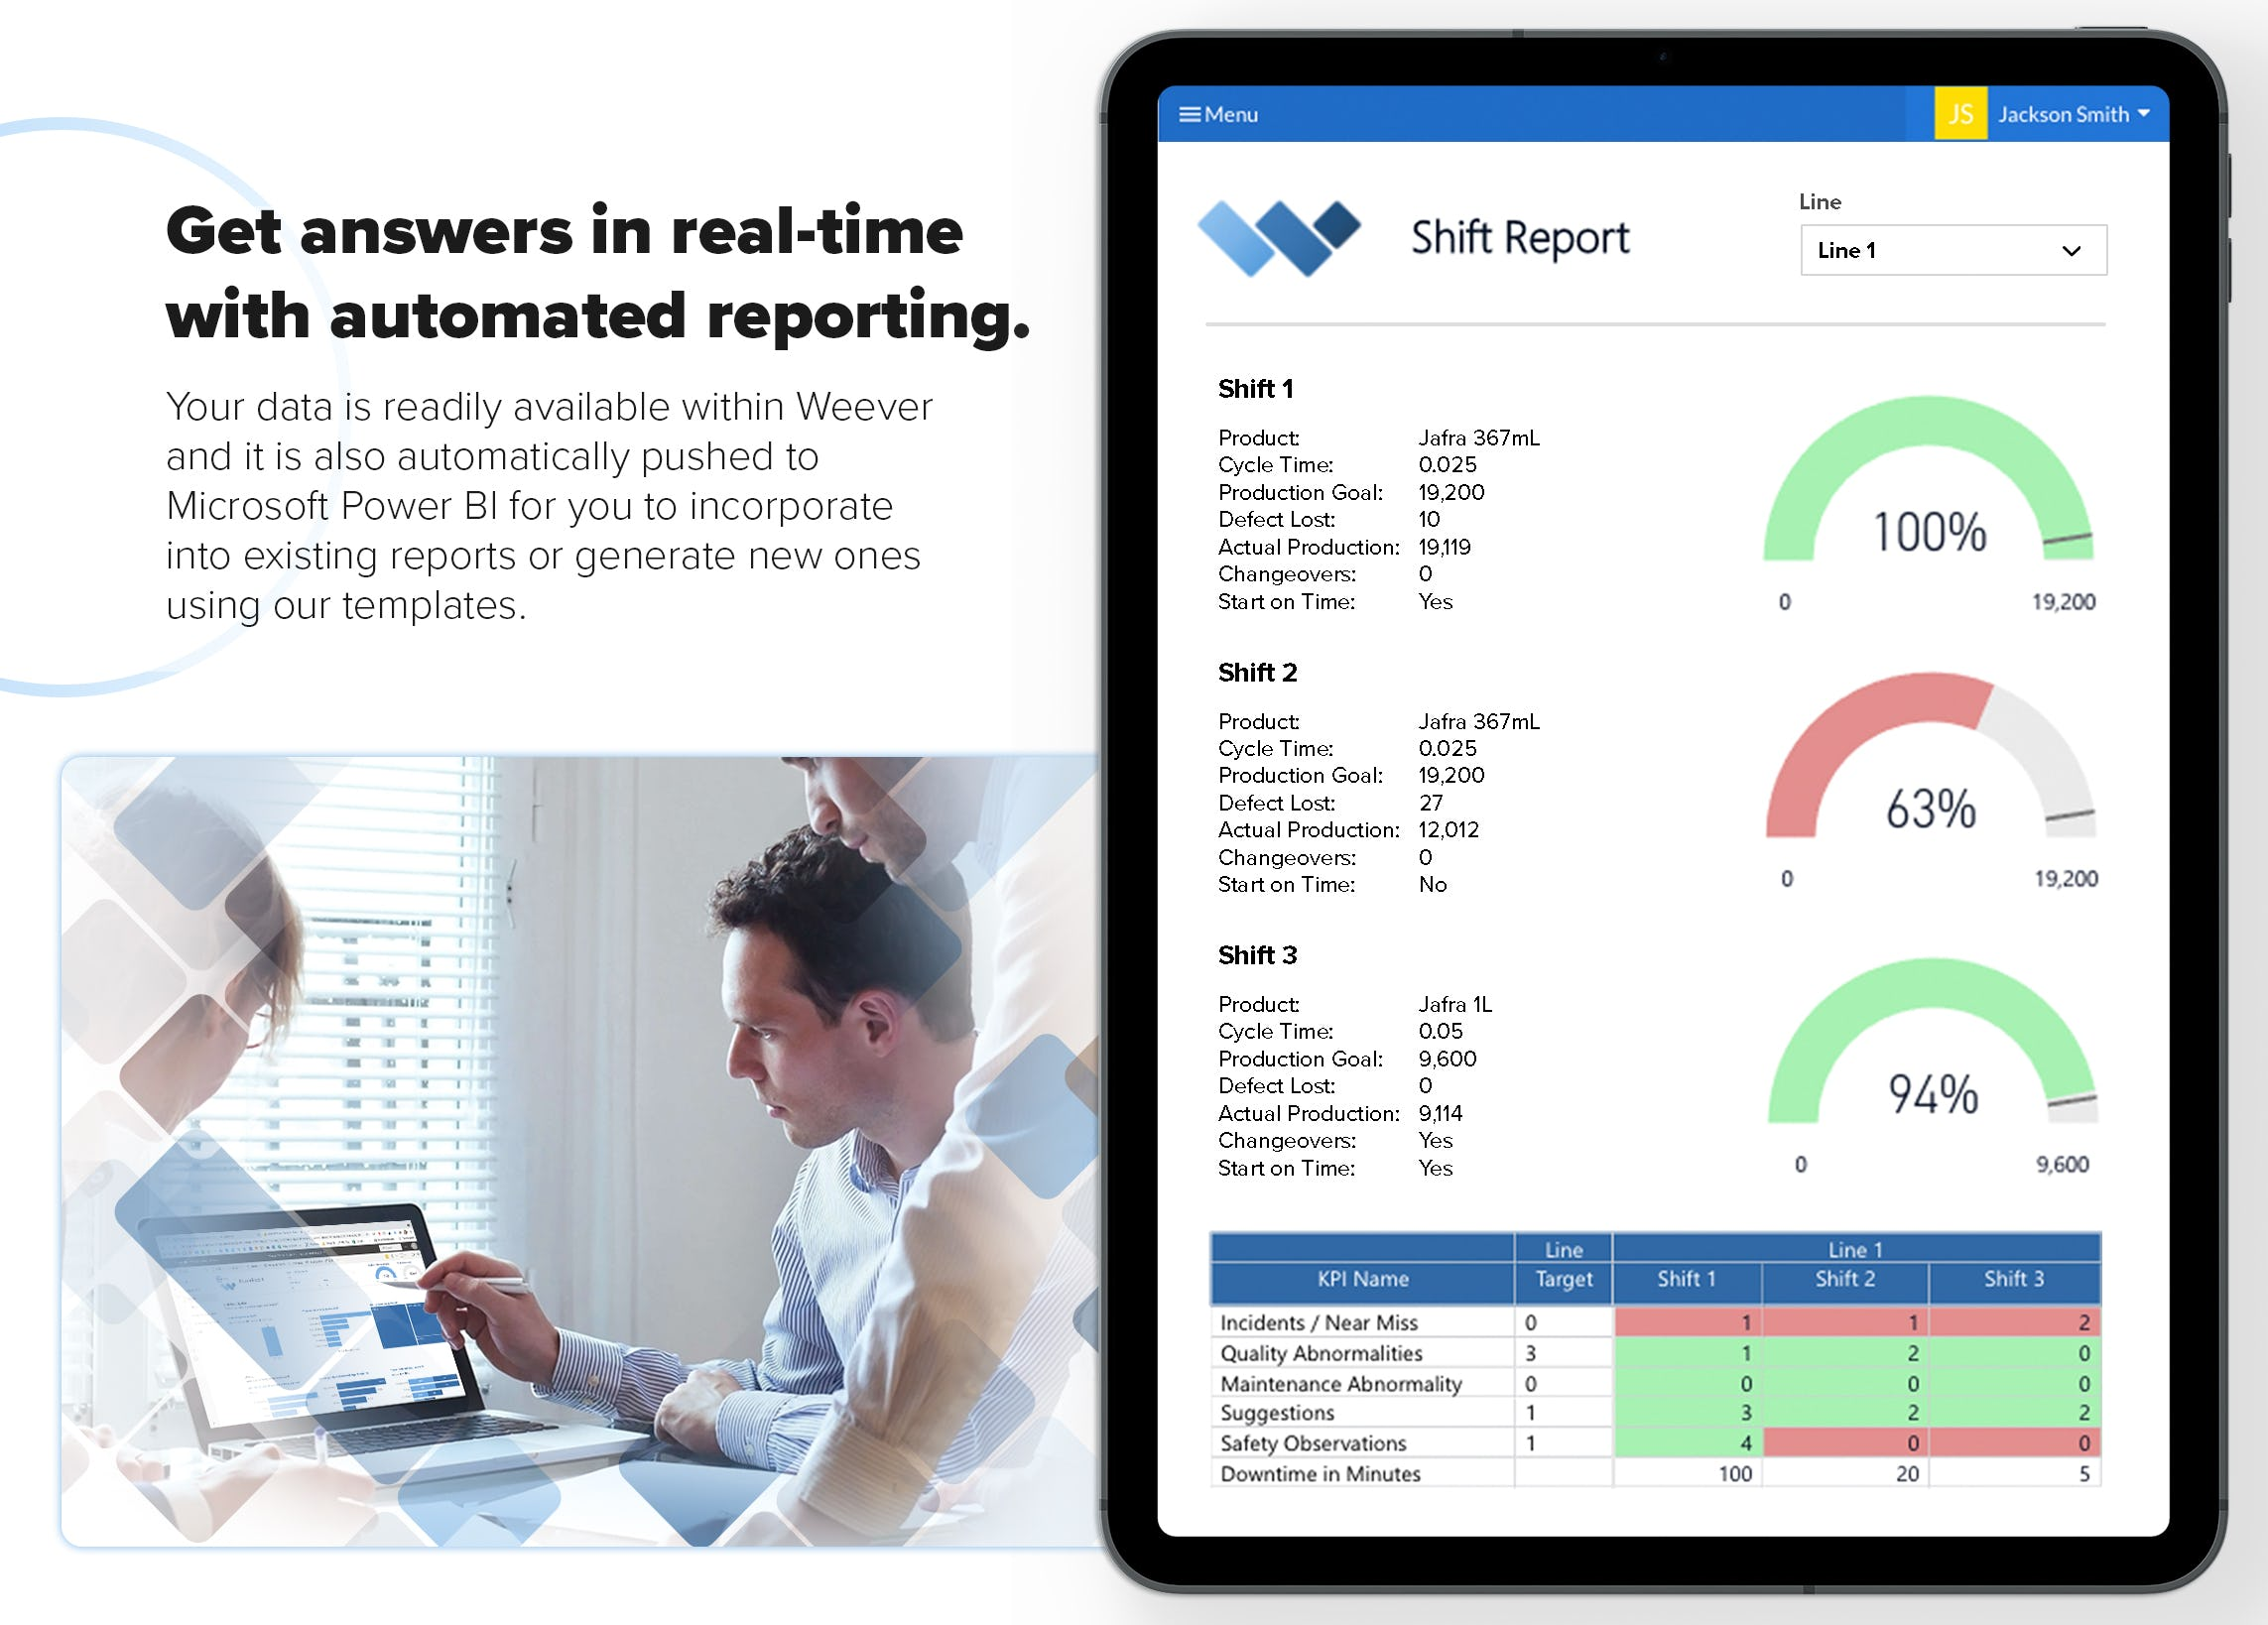 Get answers in real-time with automated reporting.  Your data is readily available within Weever as data tables. The data is also automatically pushed to Microsoft Power BI for you to incorporate into existing reports or generate new ones using our templa